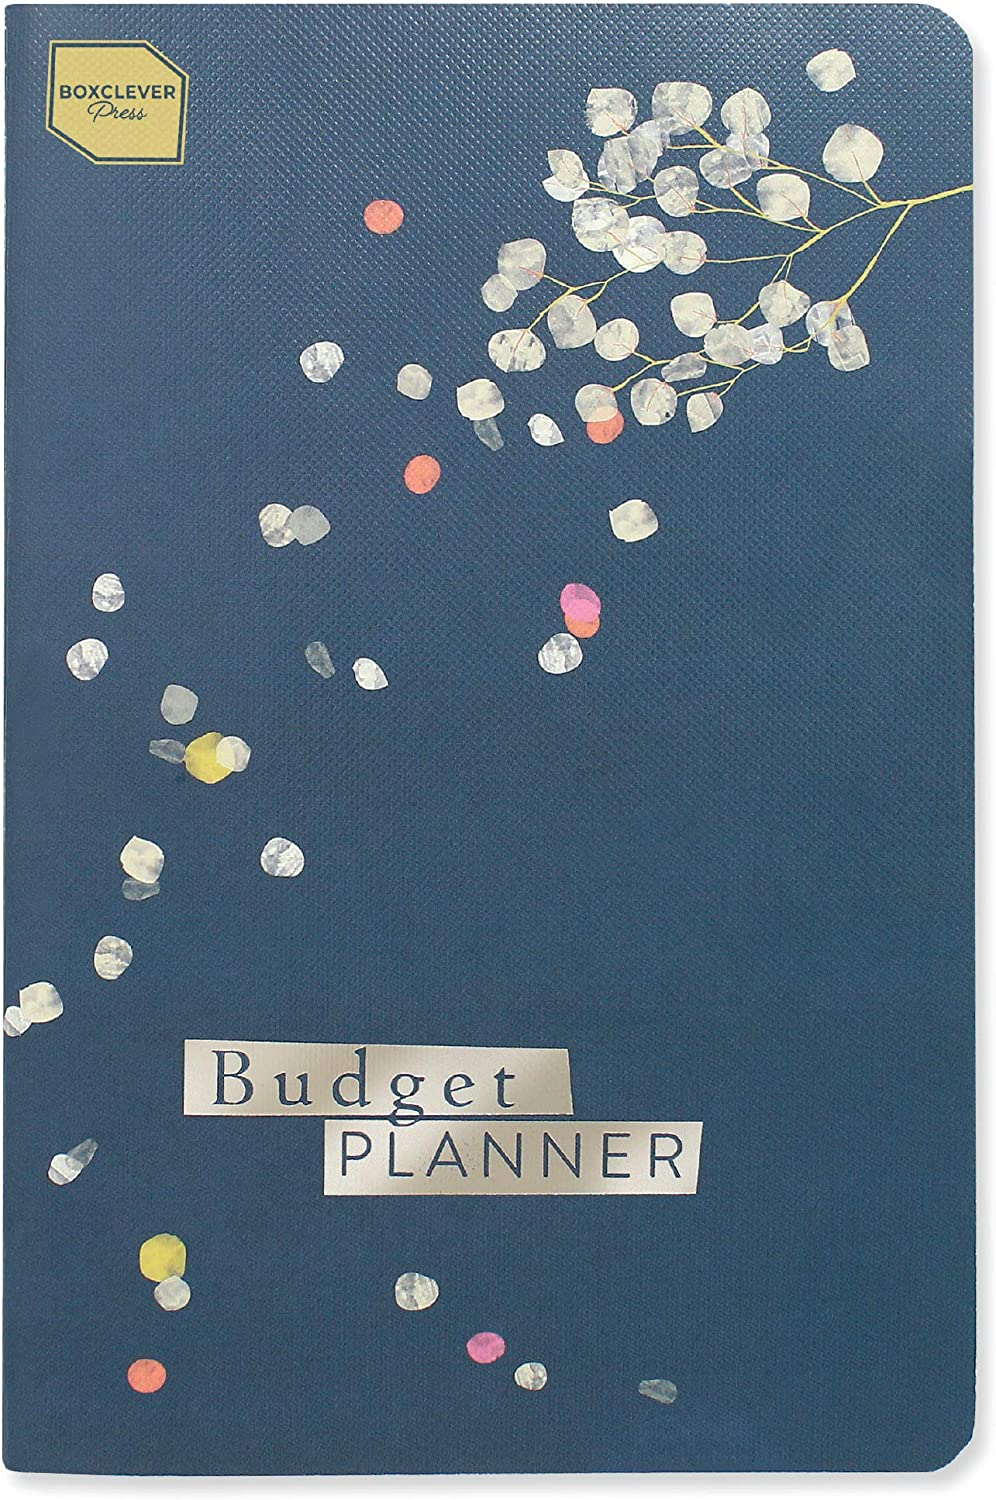 Boxclever Press Budget Planner. Budget, Save & Become Debt Free with this Undated Planner. Lightweight Budget Book & Bill Organizer with Christmas Expenses & Monthly Planner Sections. Size 8.5 x 5.5in : Office Products